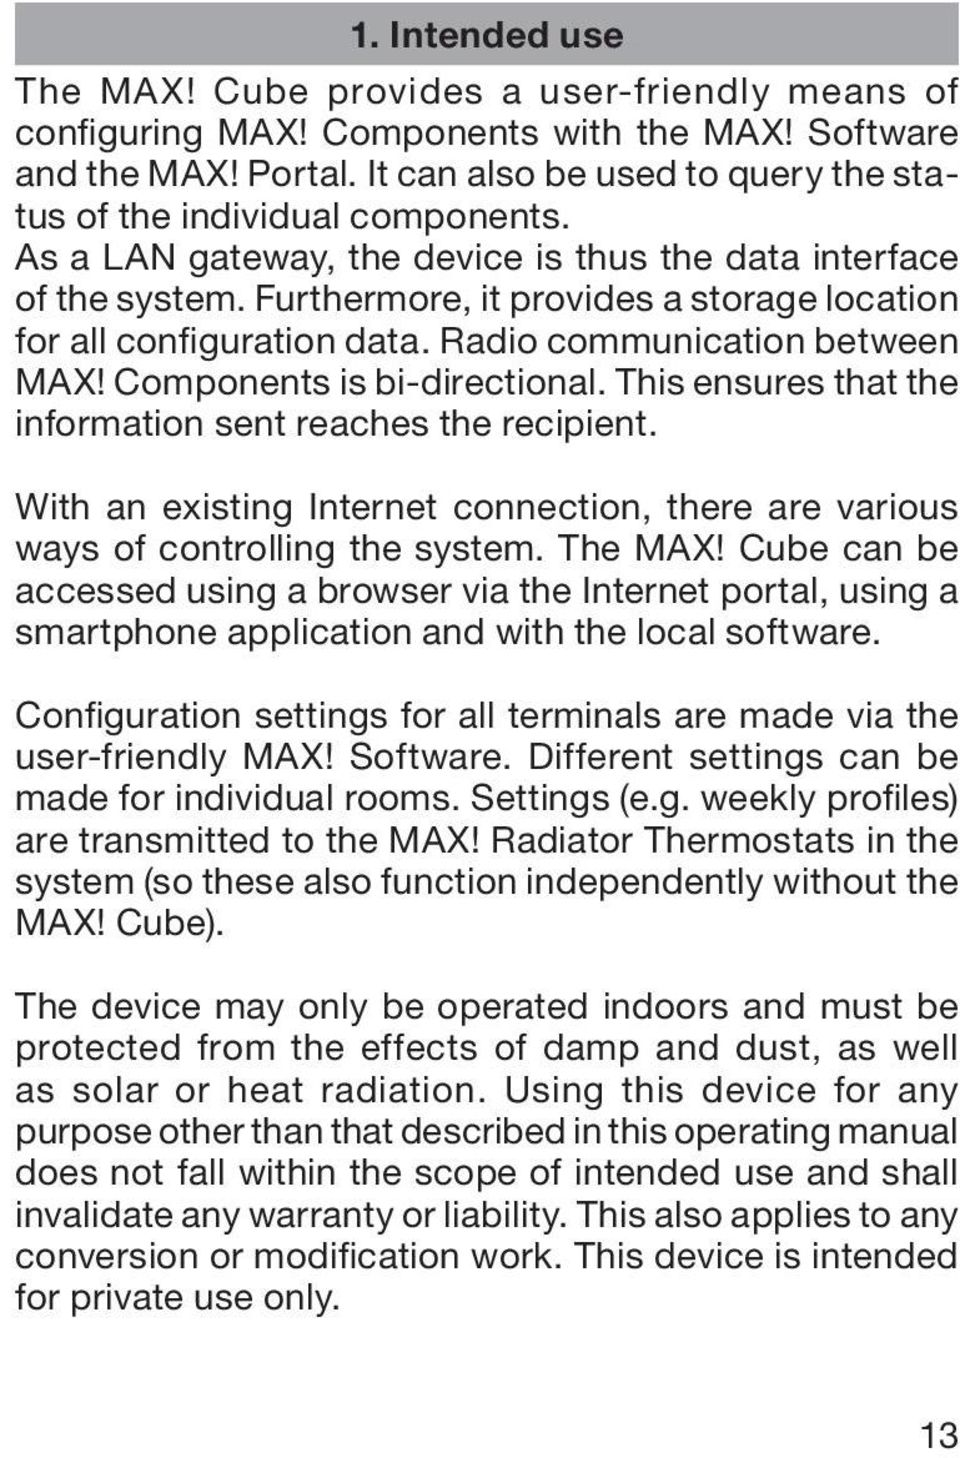 Furthermore, it provides a storage location for all configuration data. Radio communication between MAX! Components is bi-directional. This ensures that the information sent reaches the recipient.